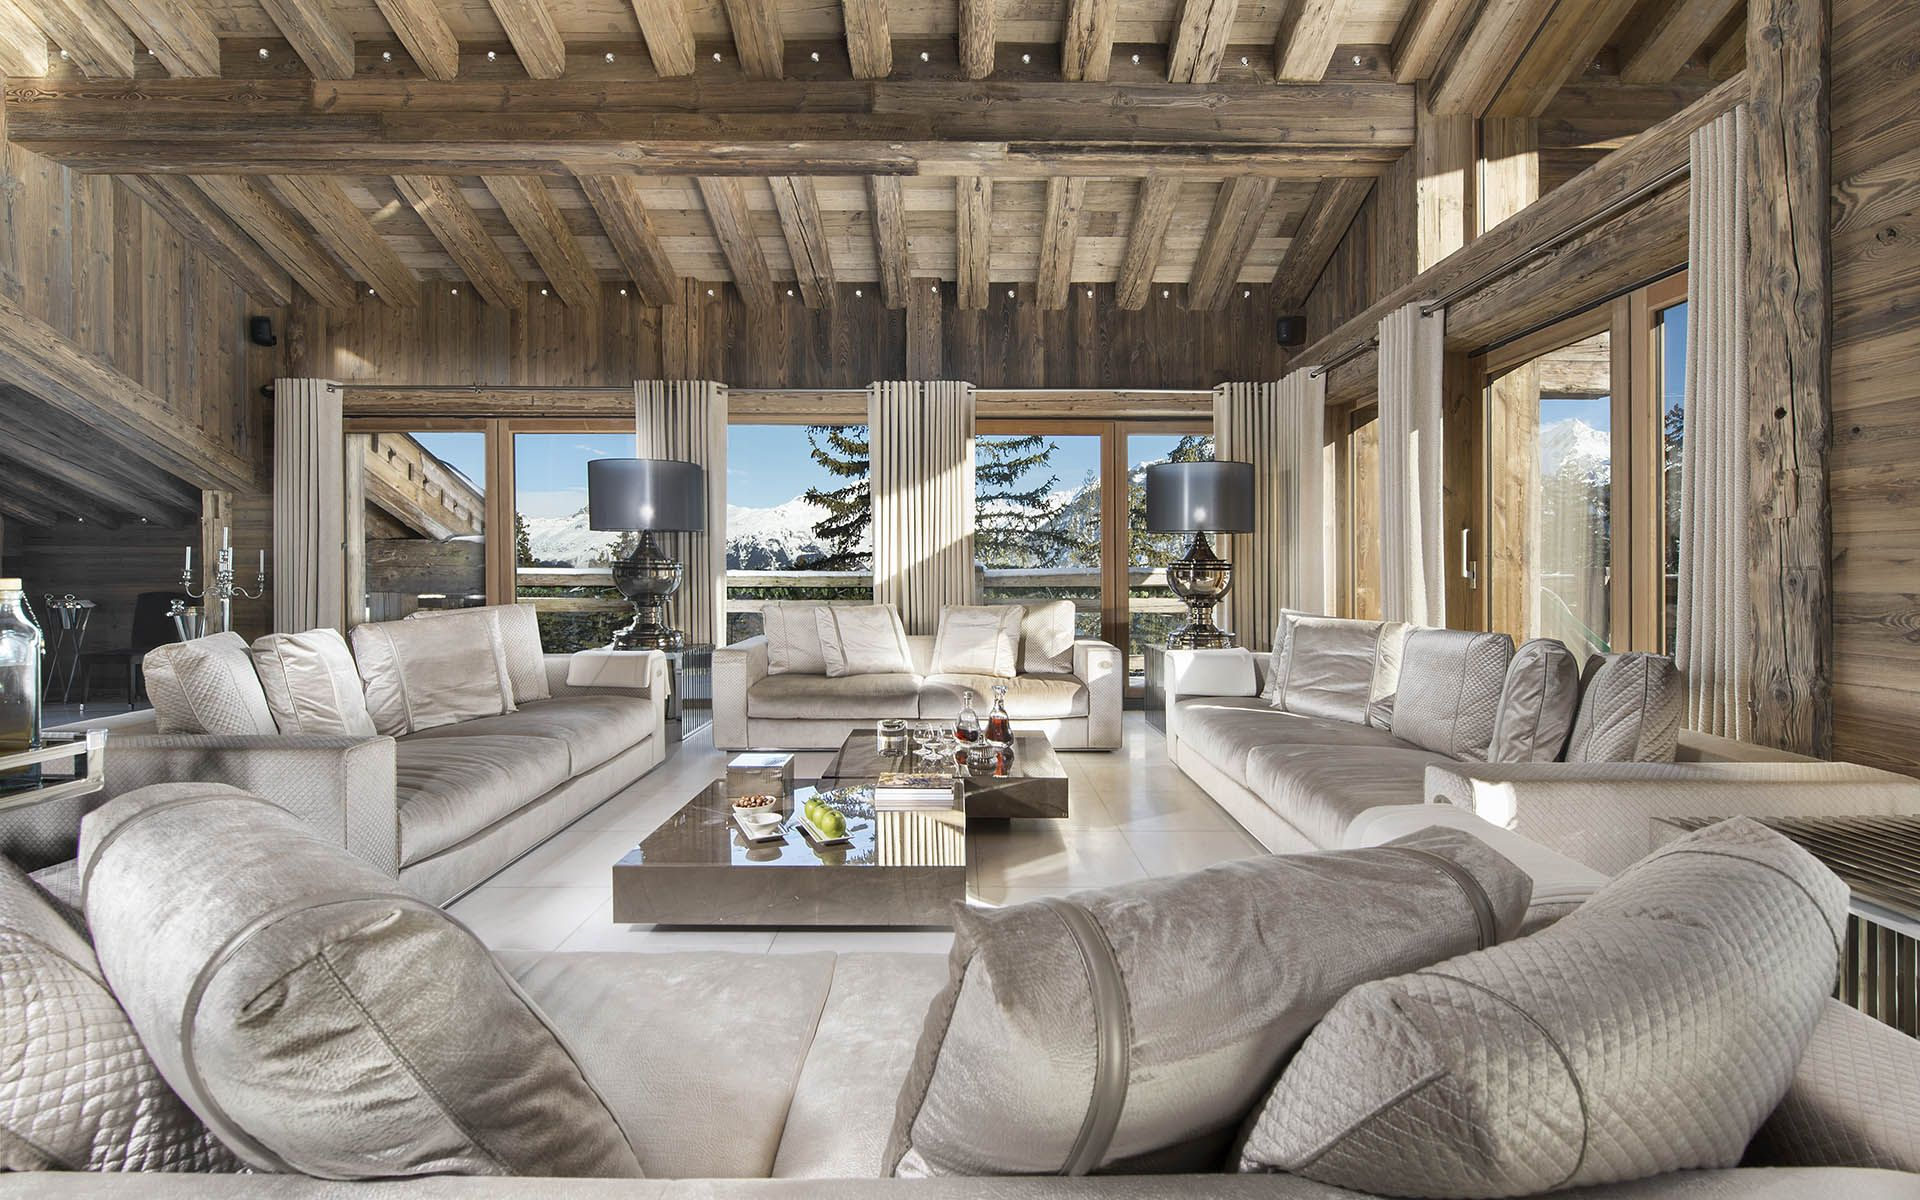 Luxury Ski Chalet, Chalet Owens, Courchevel 1850, France, France (photo#8986)